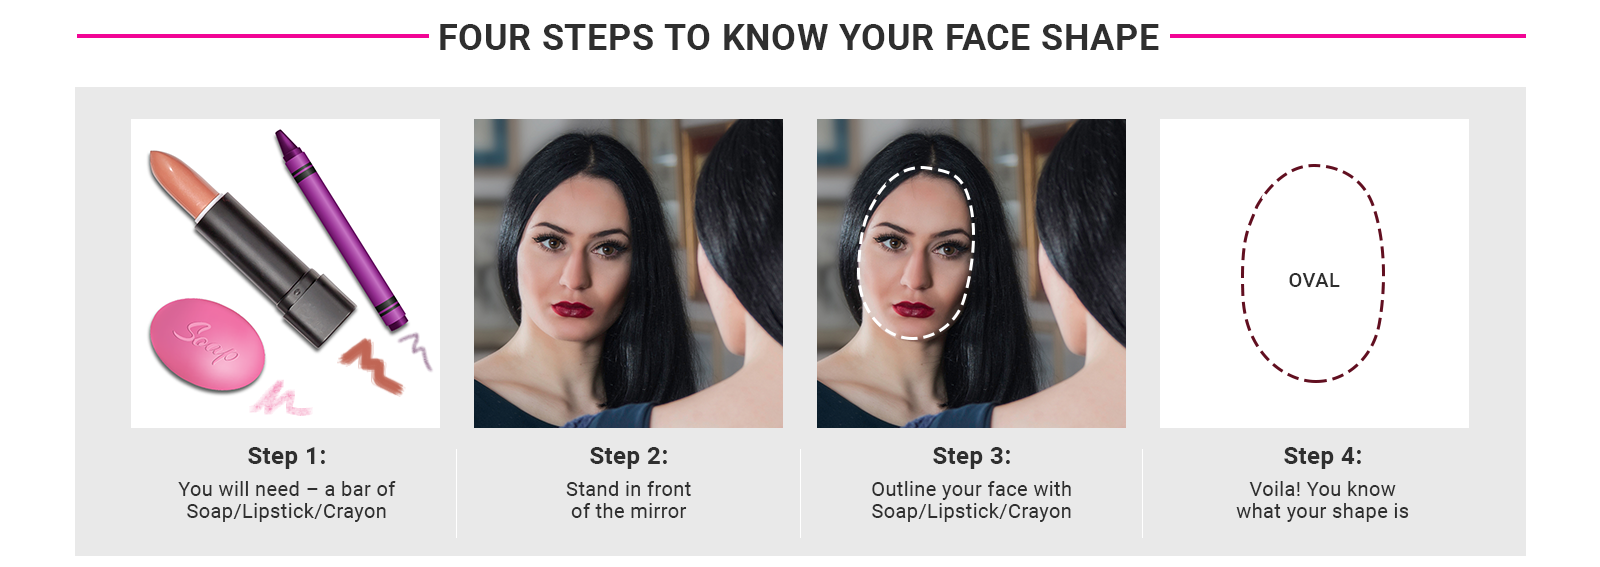 Four steps to know your face shape